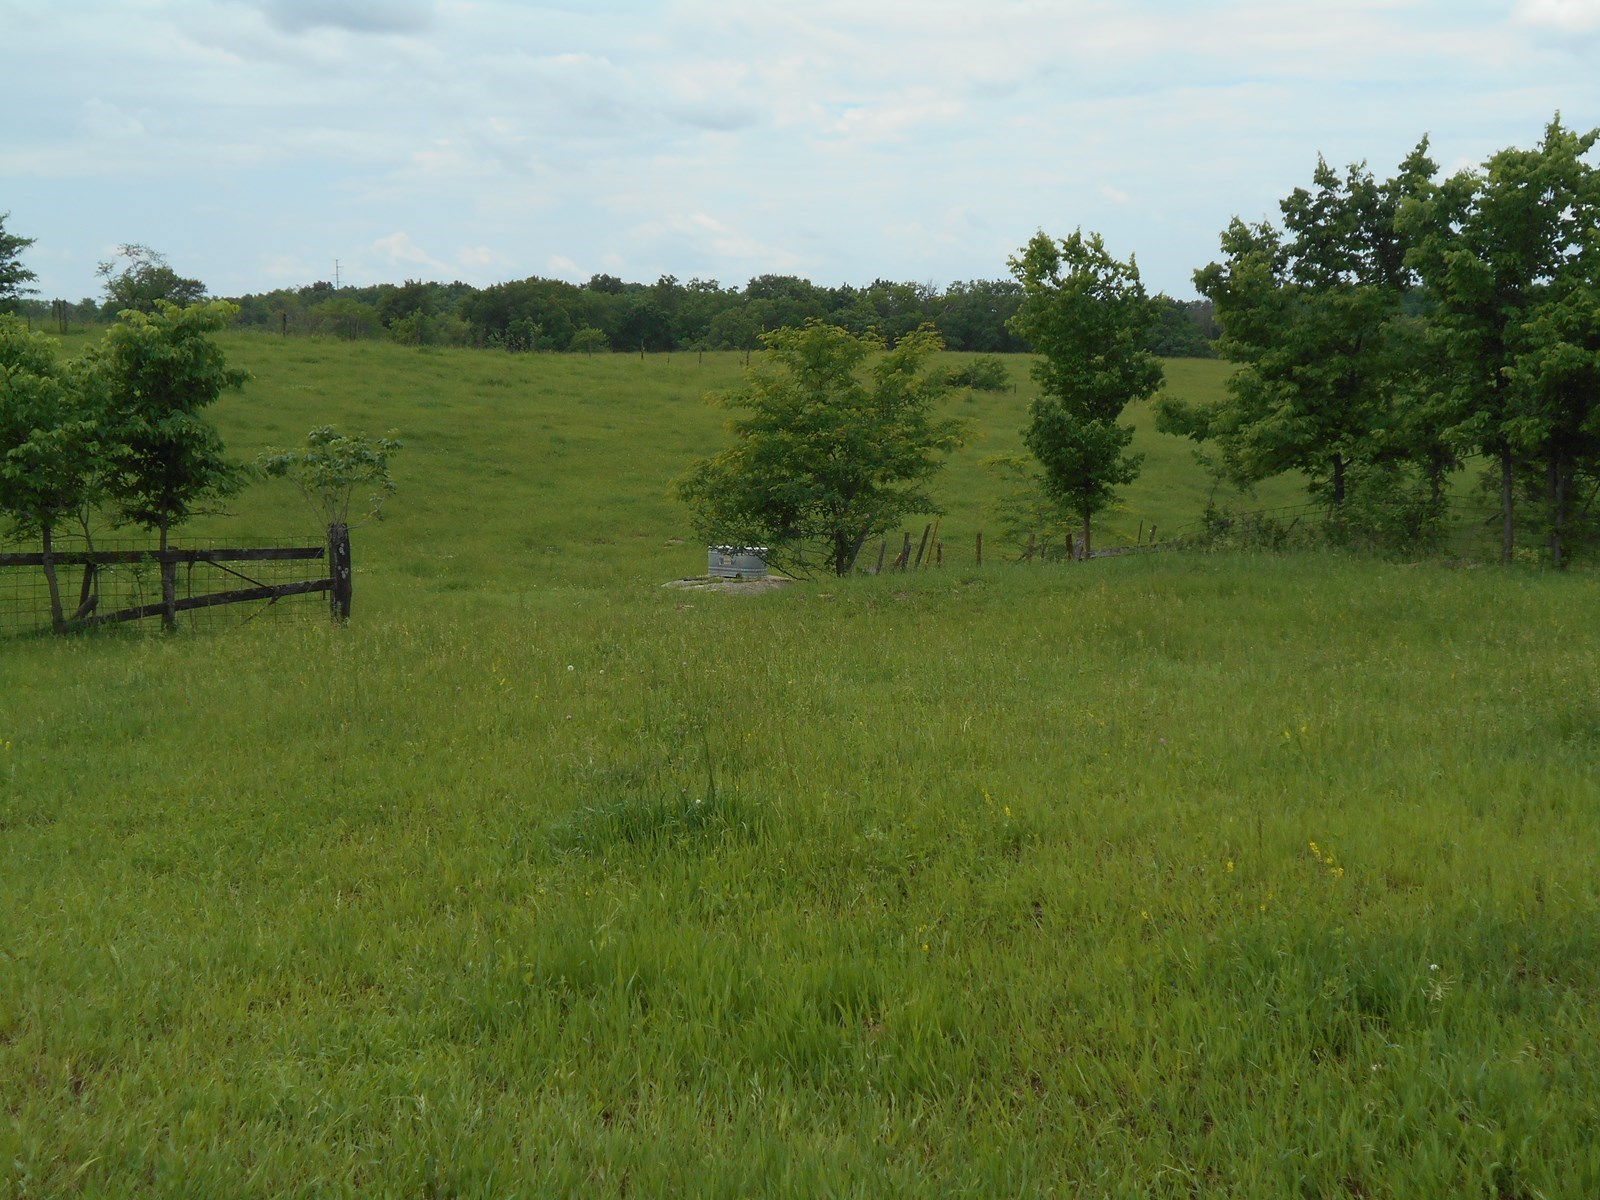 CAMERON MO 33 ACRES FOR SALE - HUNTING, REC & HOMESITE